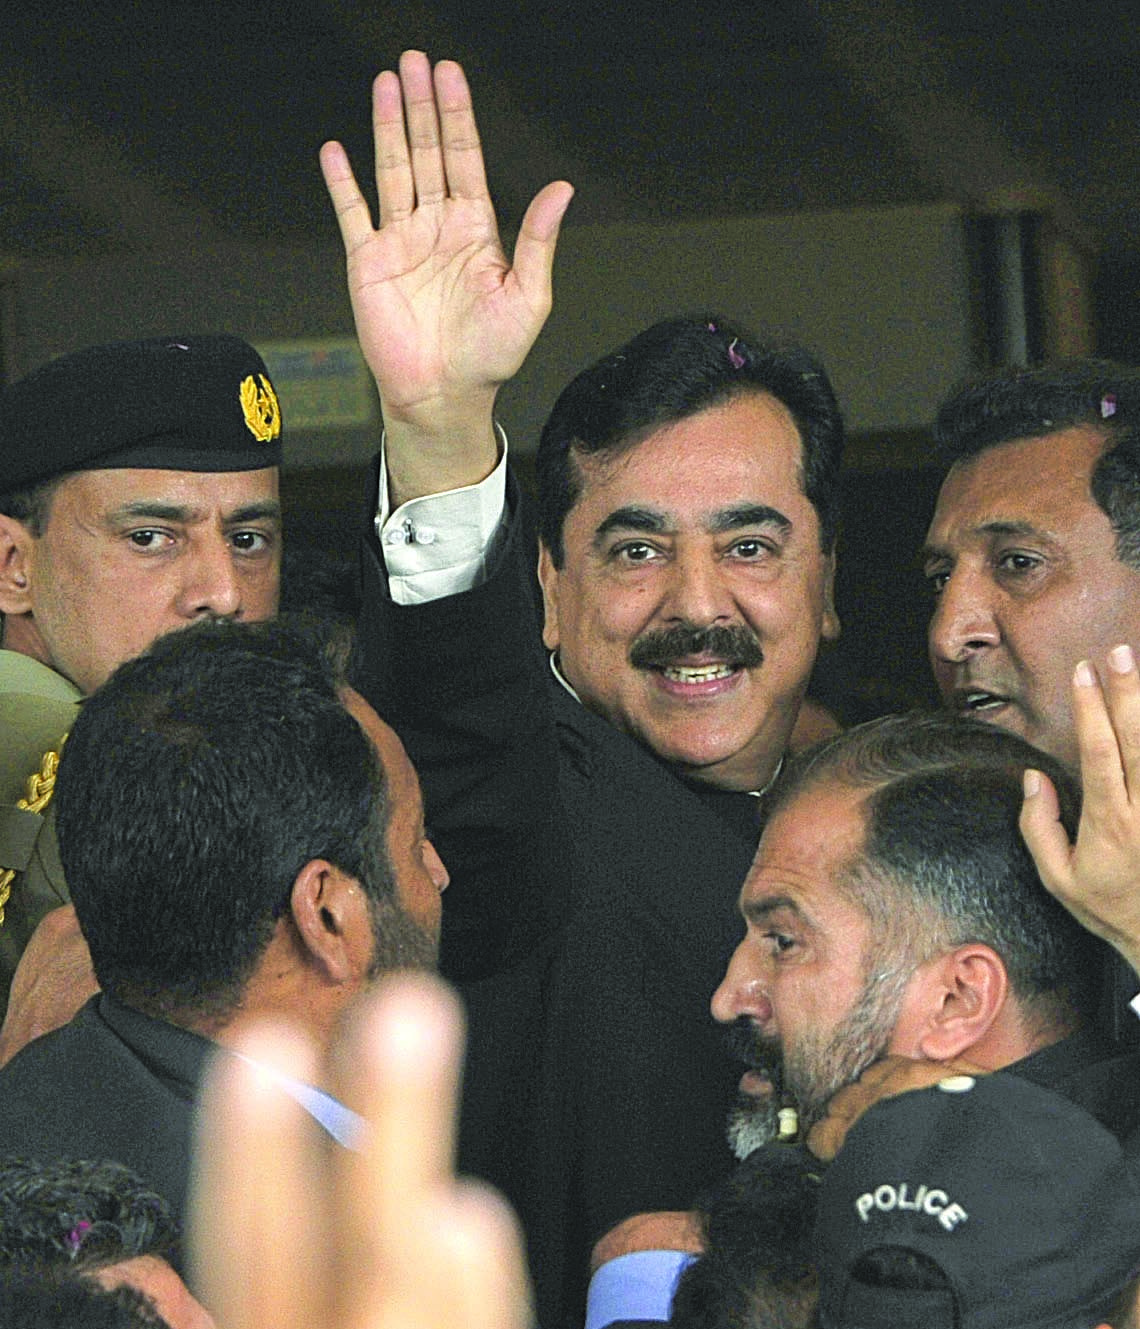 Yousuf Raza Gilani came waving into the office, but was waved away by the judiciary before he could complete his prime ministerial term.